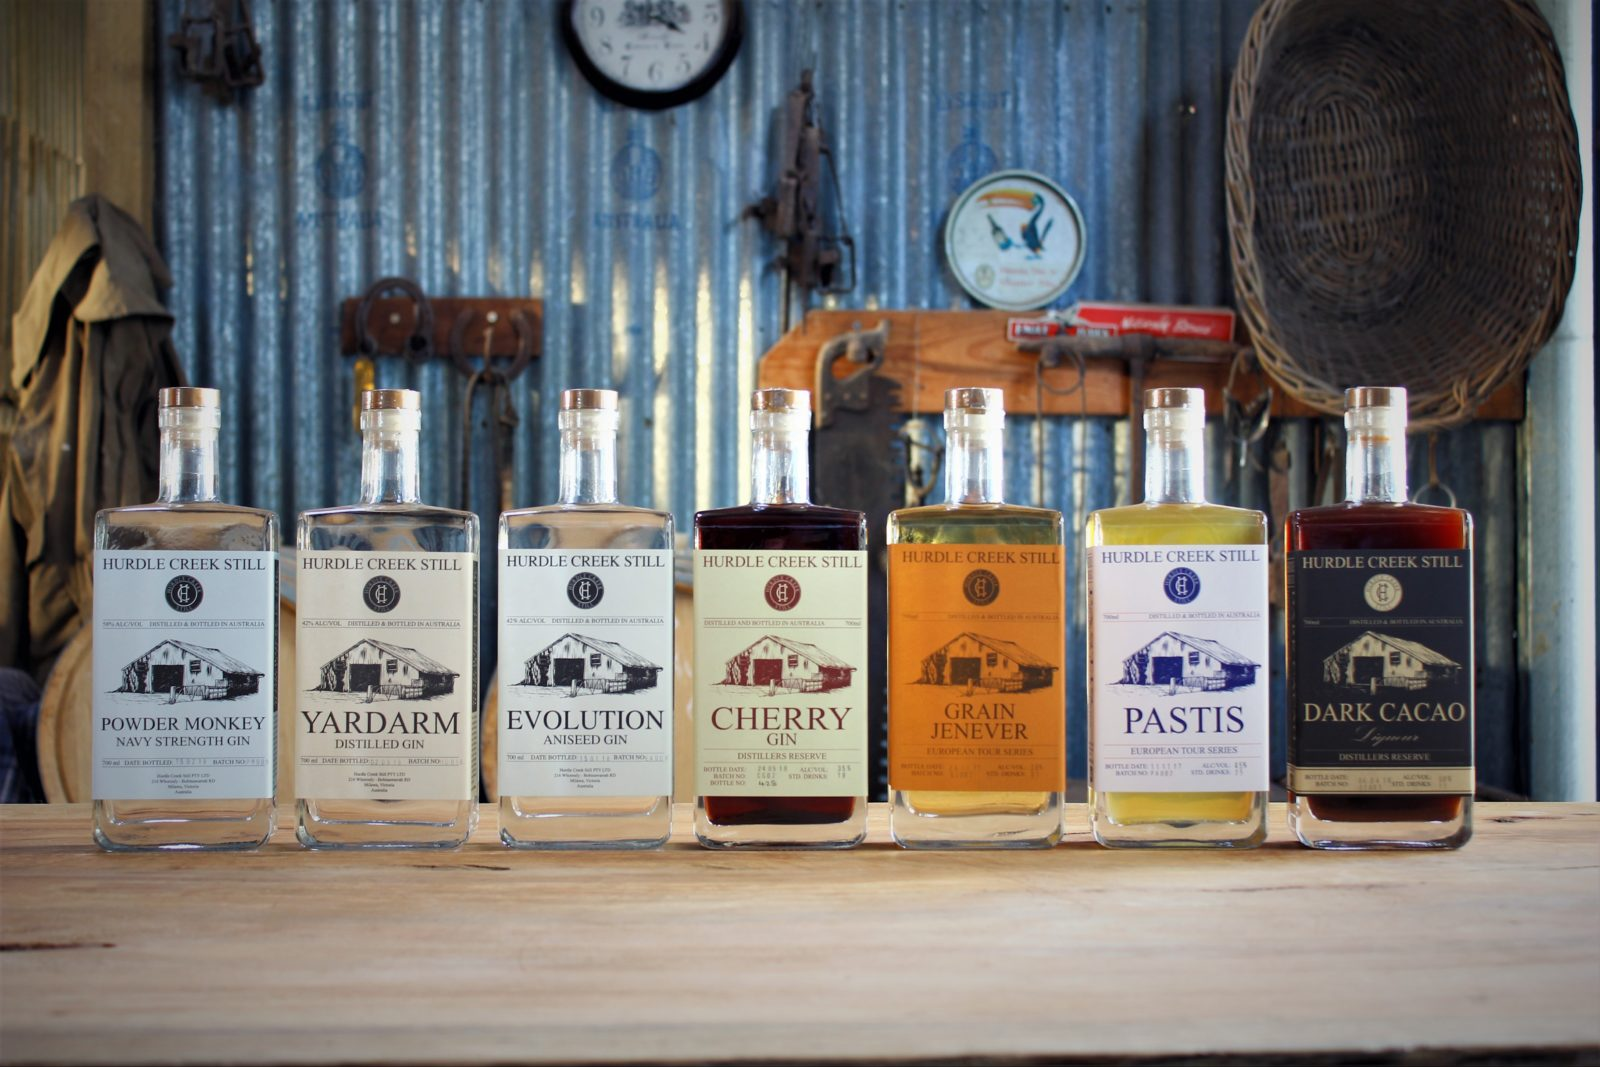 Hurdle Creek Still Products - Distilled on site